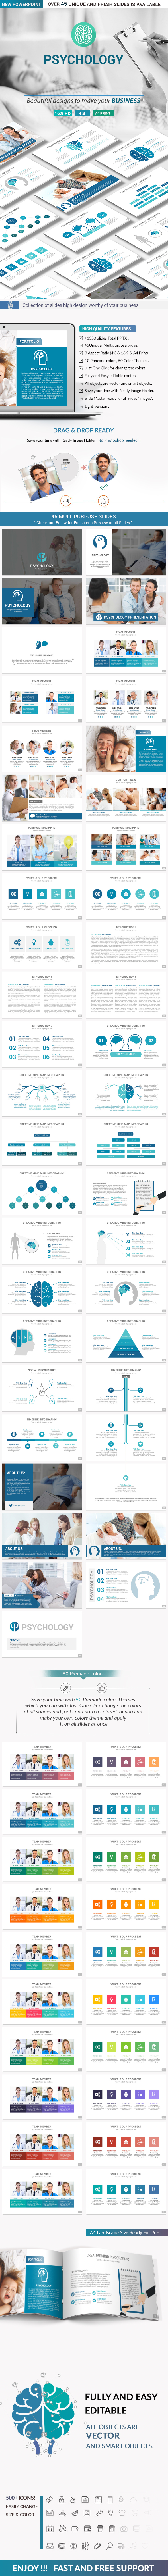 Psychology PowerPoint Presentation Template - Creative PowerPoint Templates